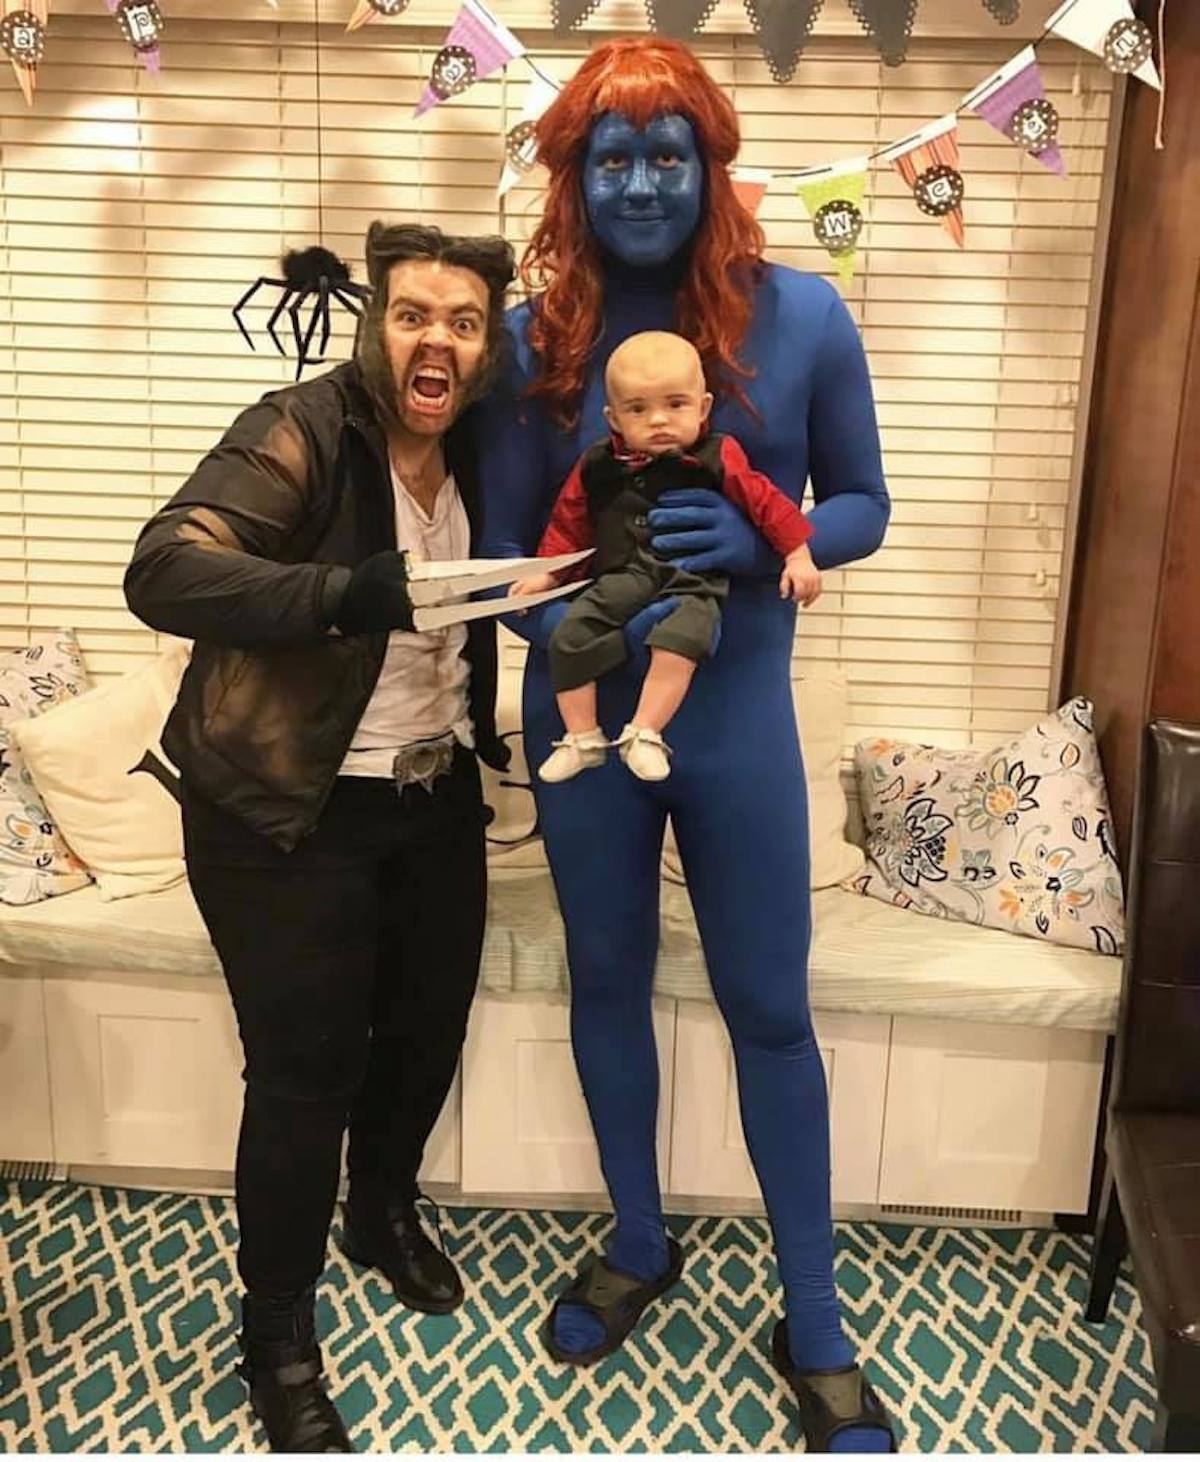 Family wearing X-Men character costumes smile in front of Halloween decorations.